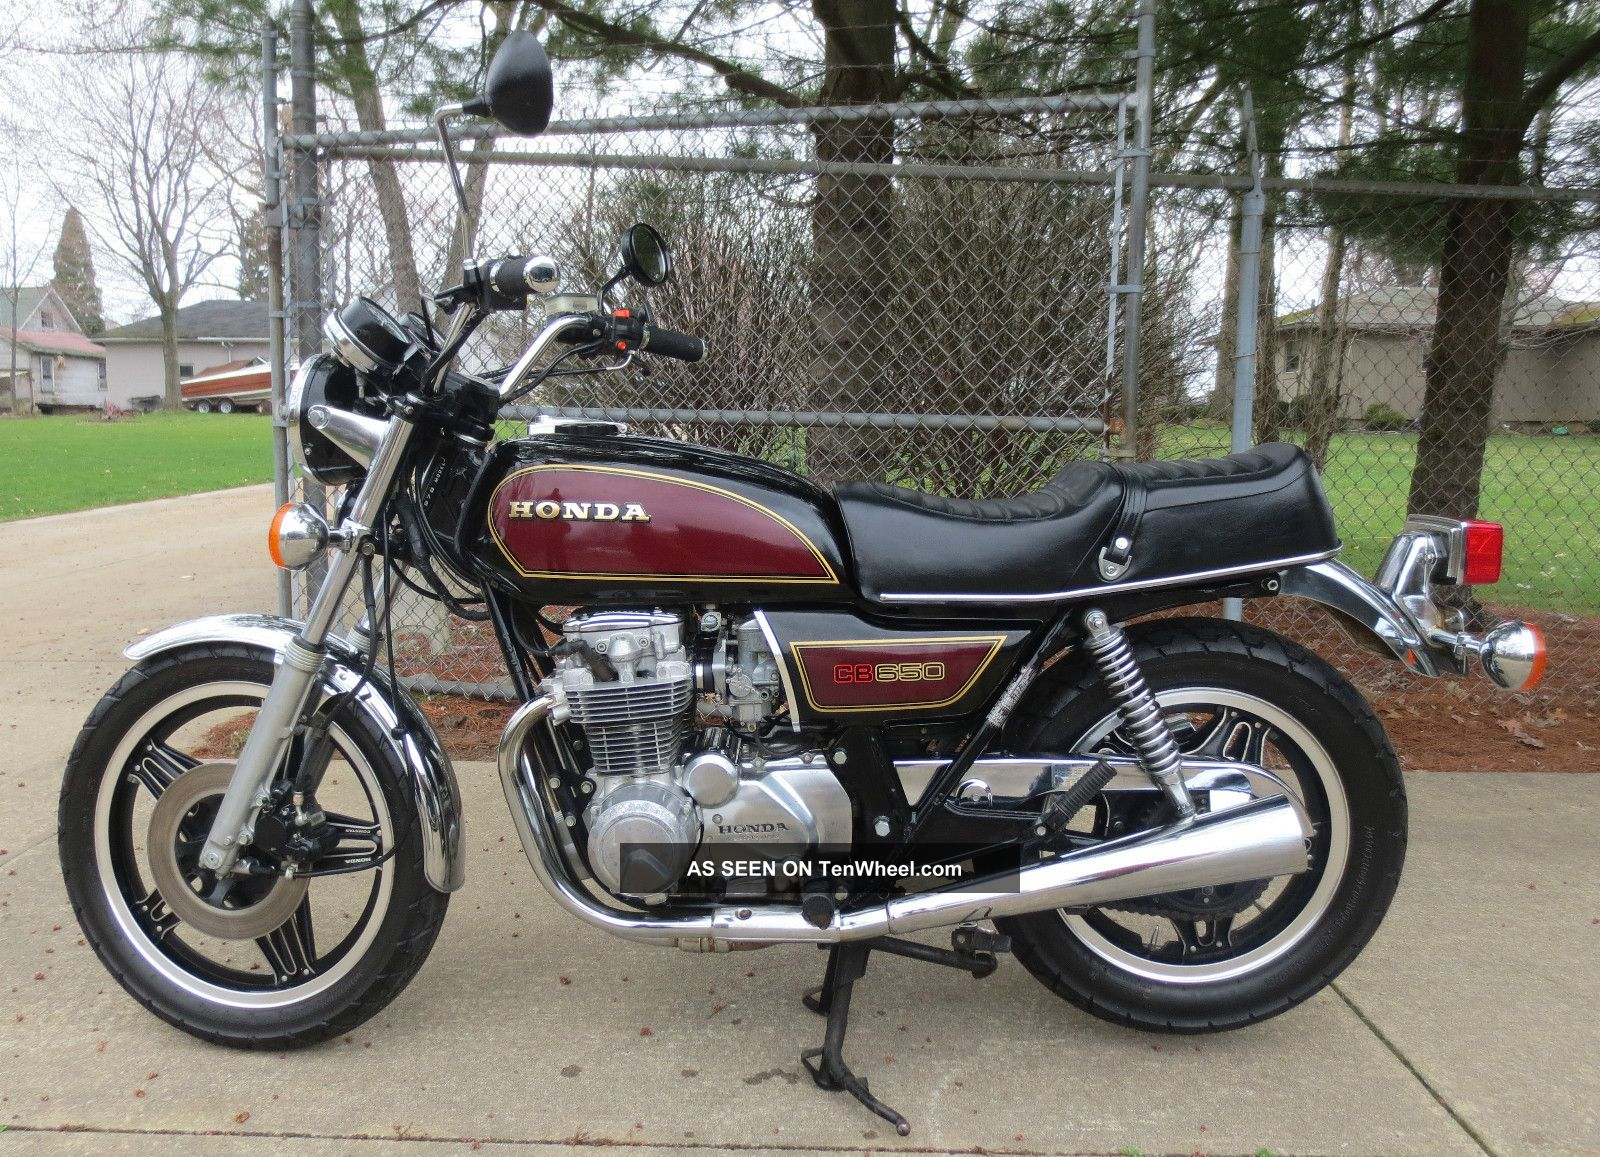 1979 Honda Cb650 Paint Motorcycle Bike Ready To Ride CB photo